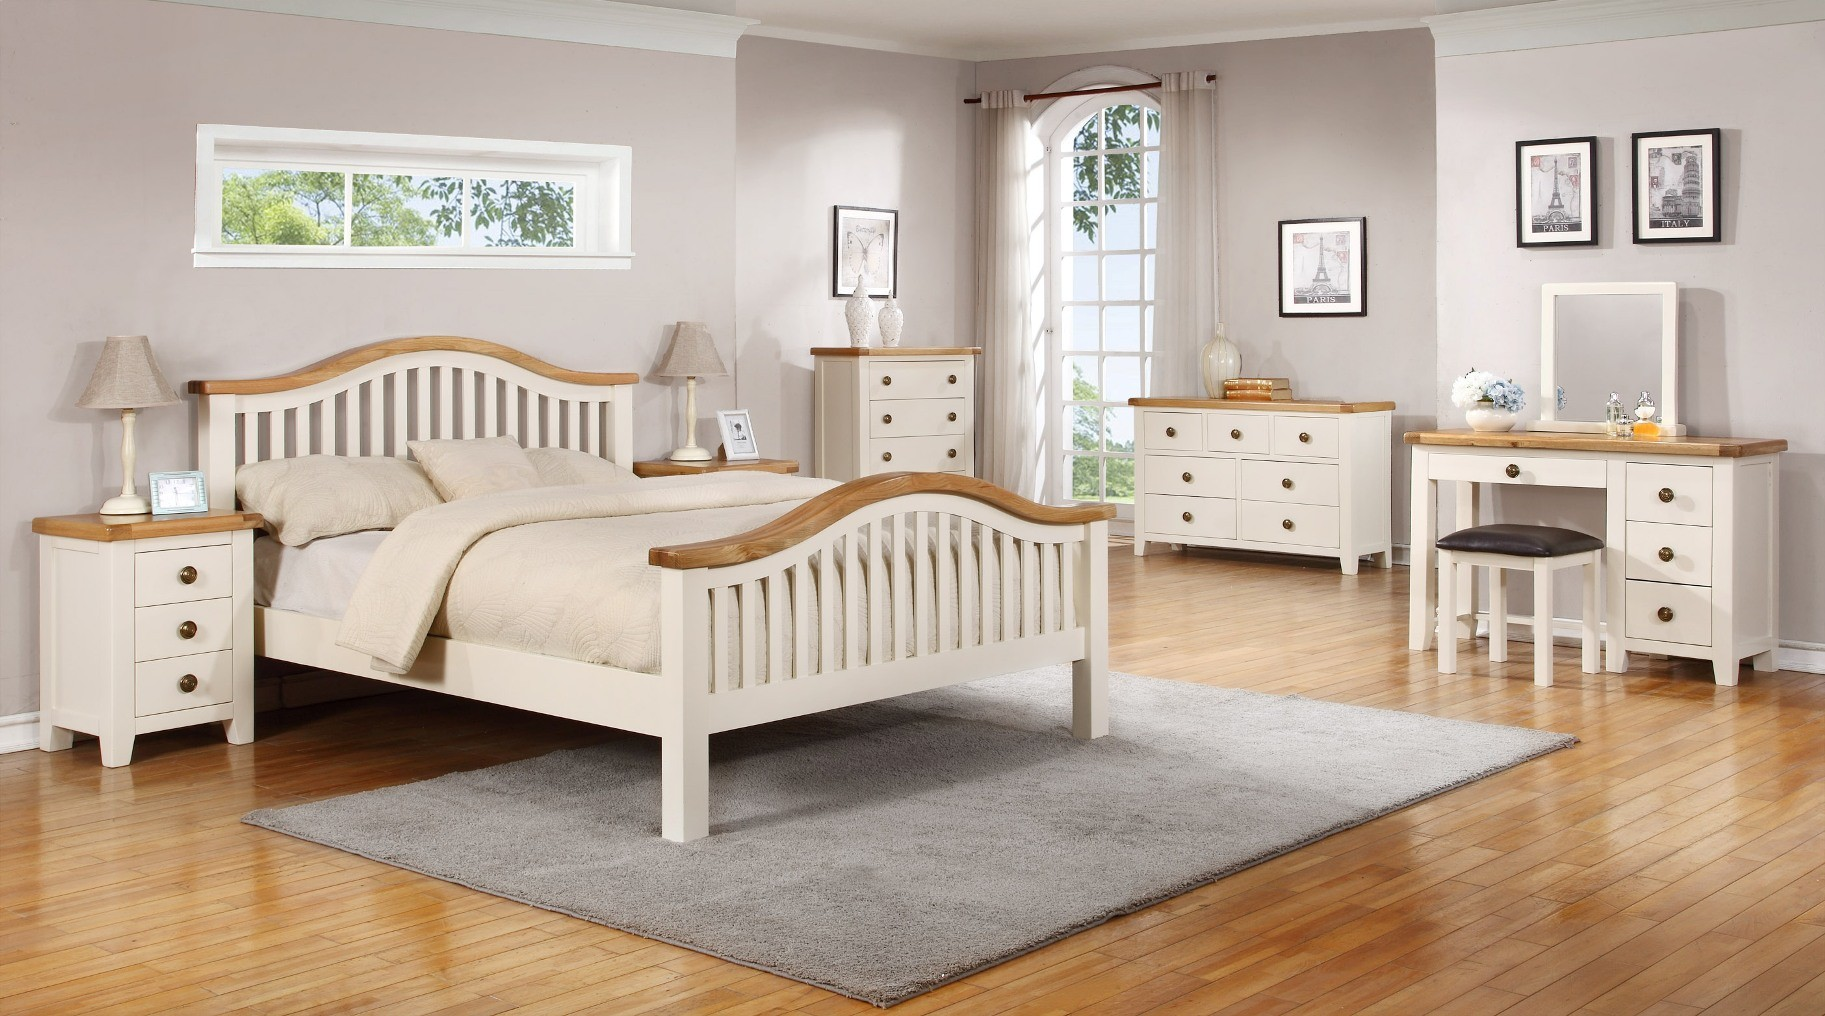 Nore 4'6 bedframe with high foot end